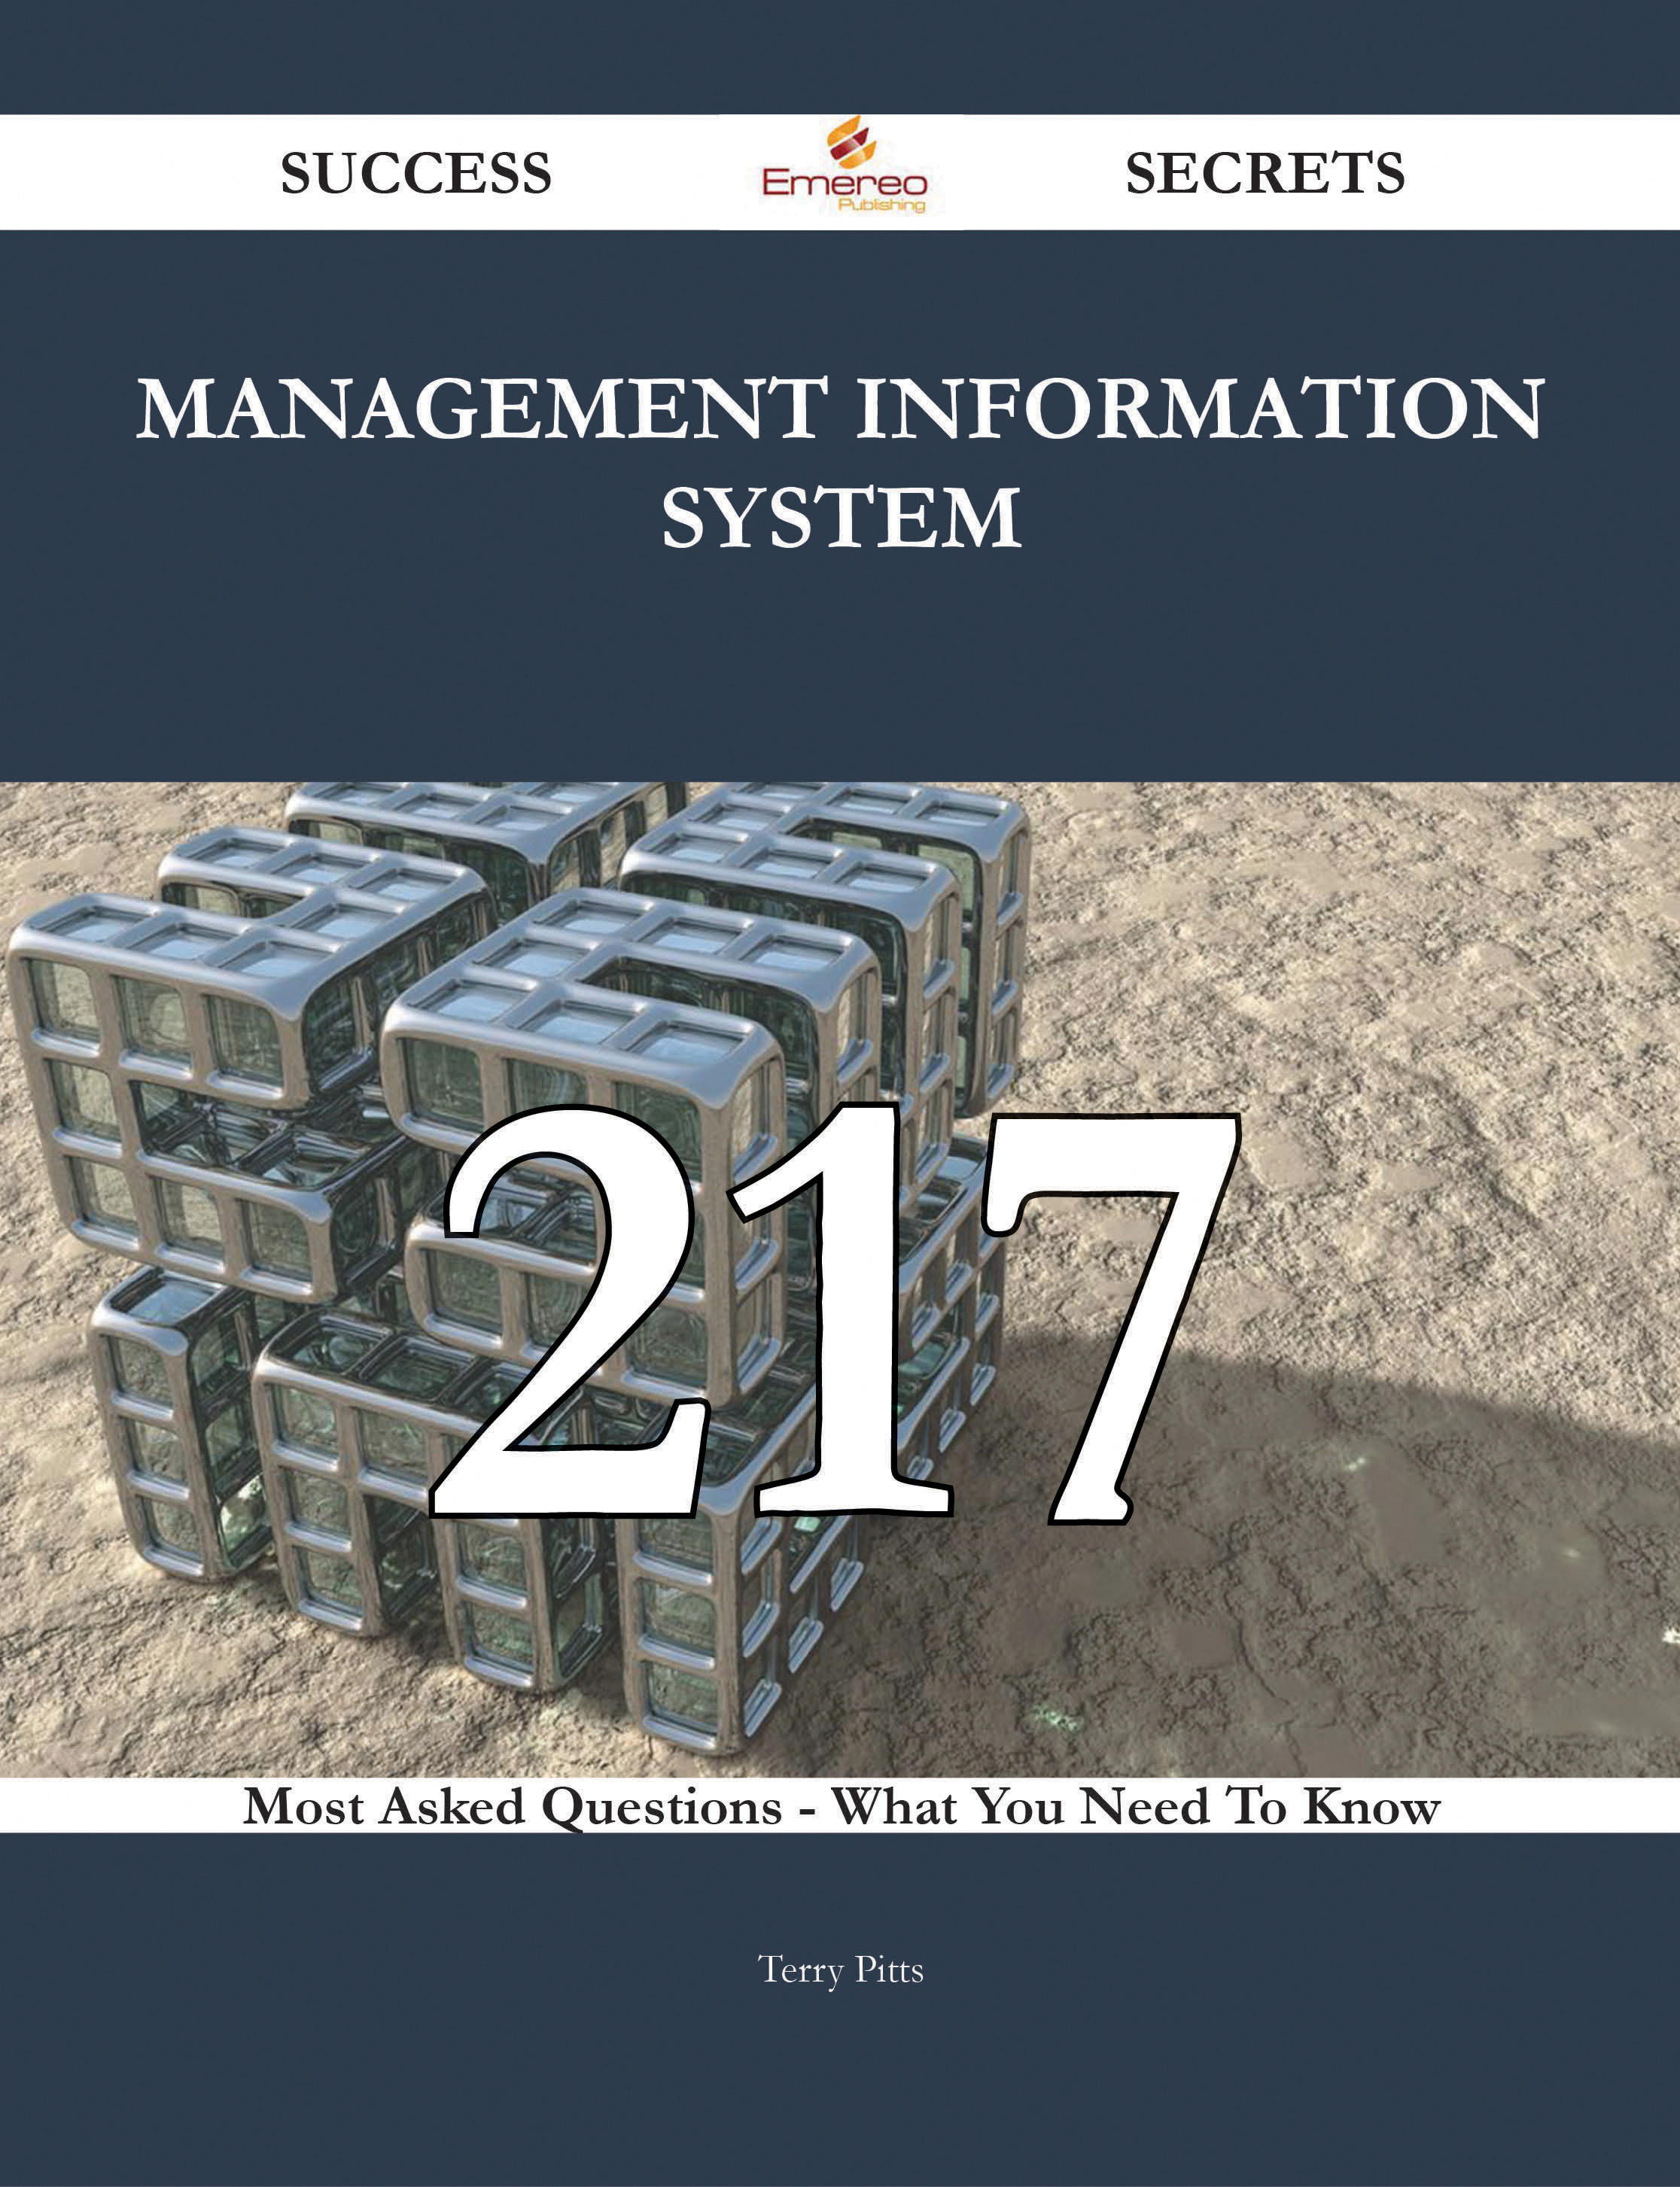 Management Information System 217 Success Secrets - 217 Most Asked Questions On Management Information System - What You Need To Know